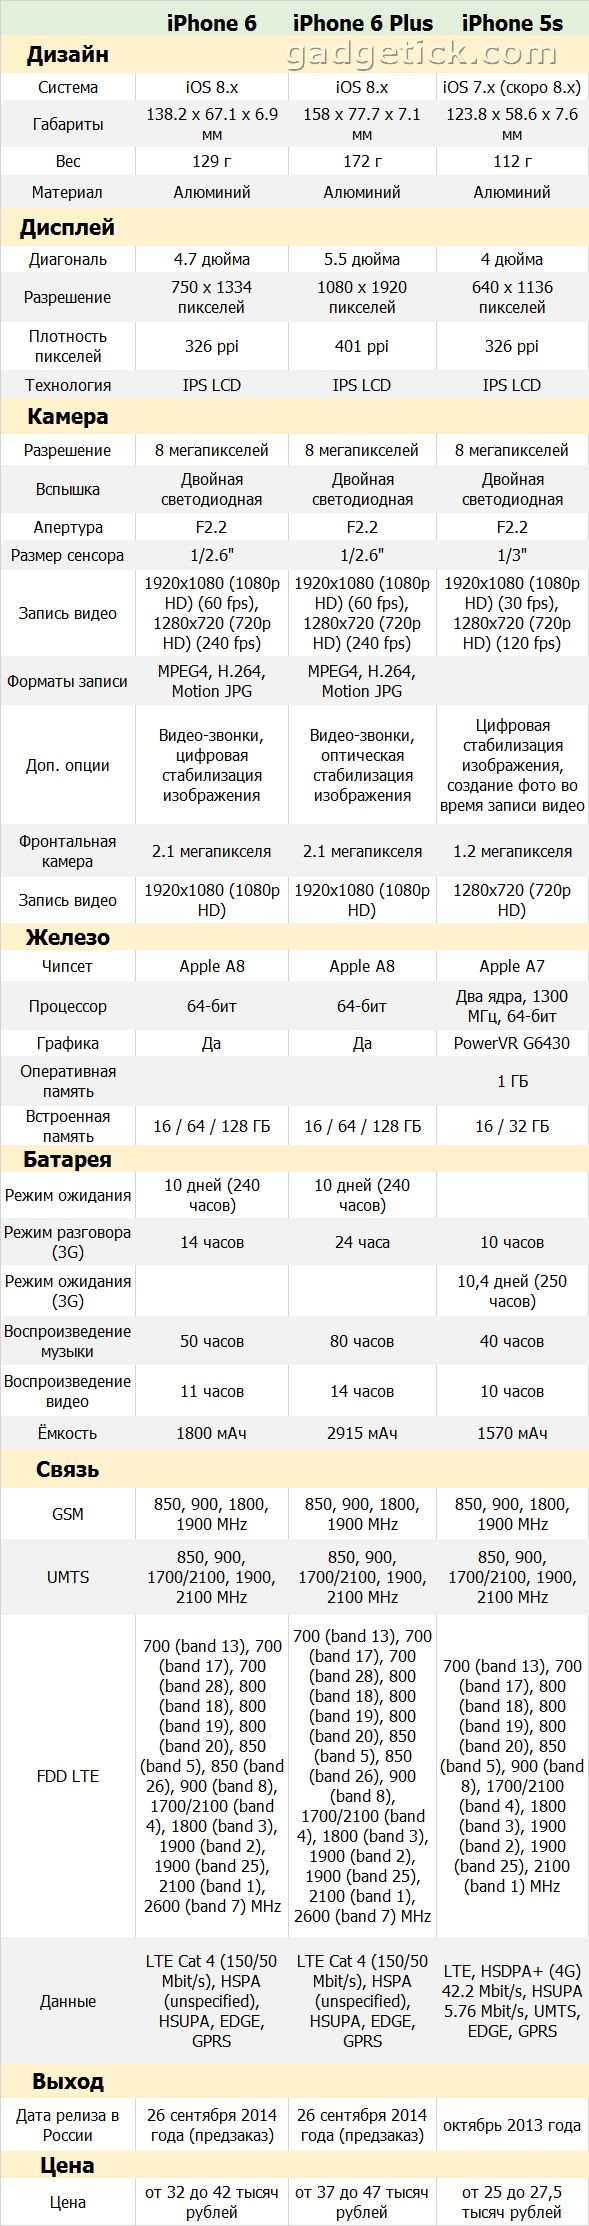 Сравнение iPhone 6, iPhone 6 Plus и iPhone 5s